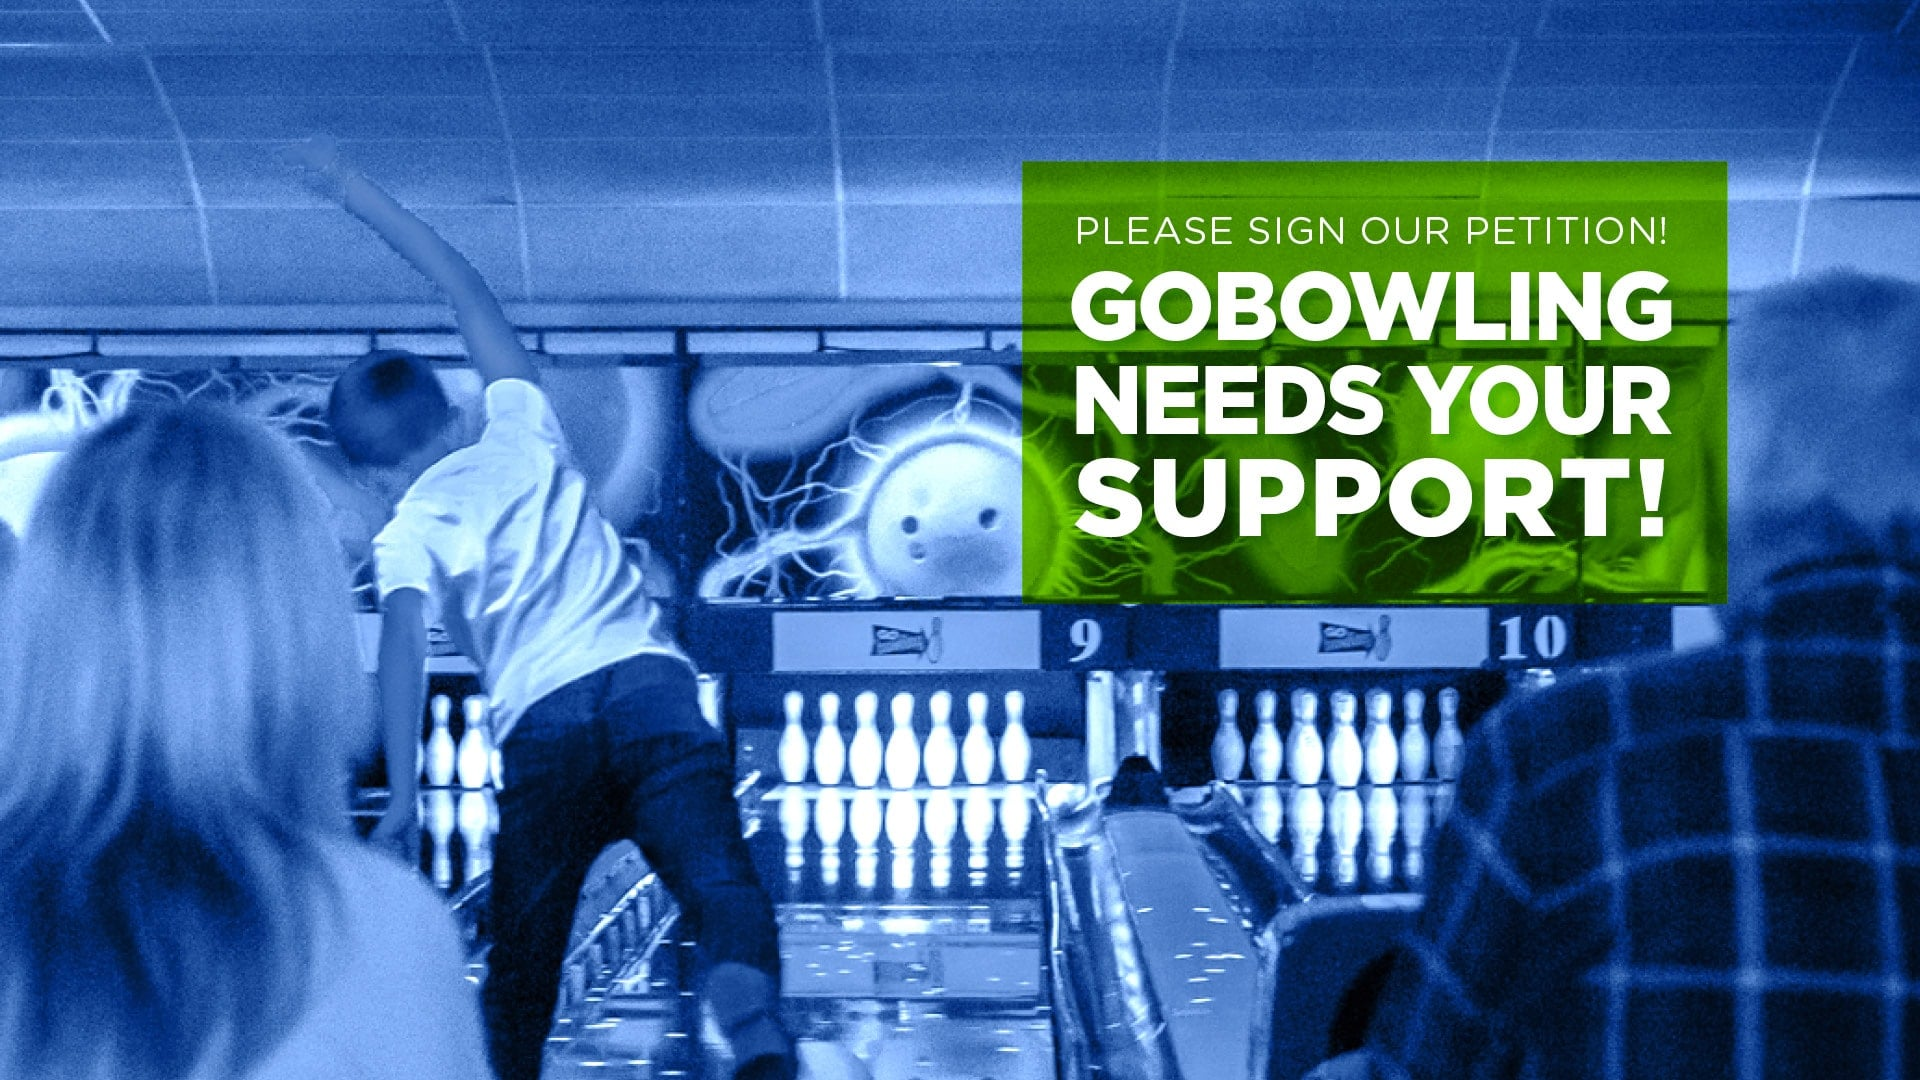 GObowling needs your support!